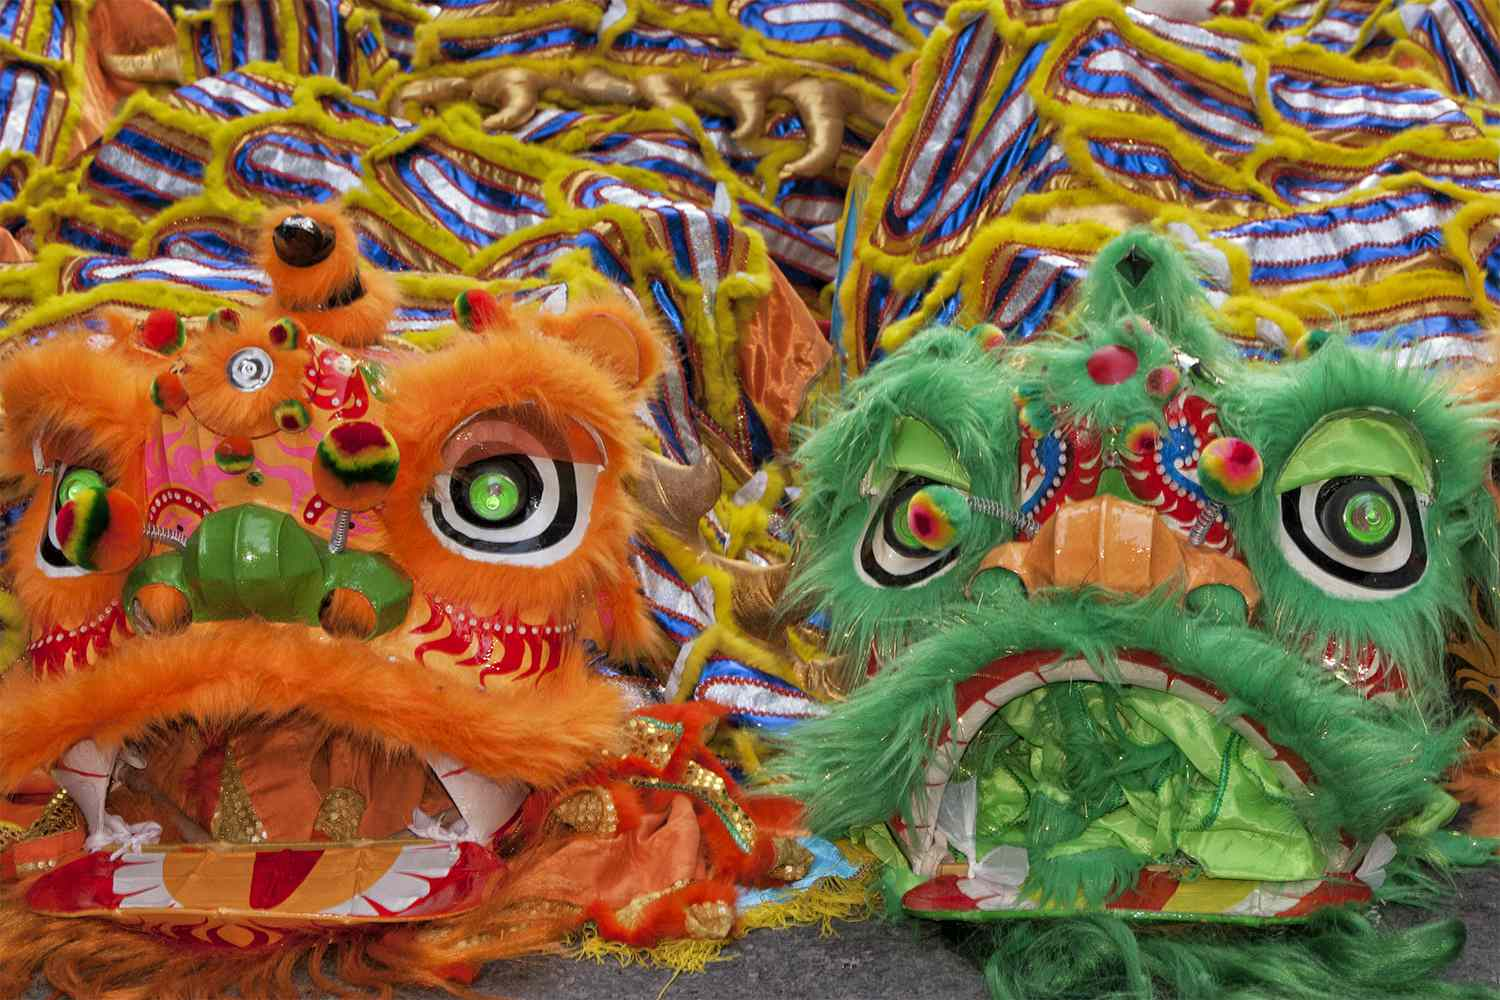 Dragon Dancer Costumes for San Francisco's Chinese New Year Parade